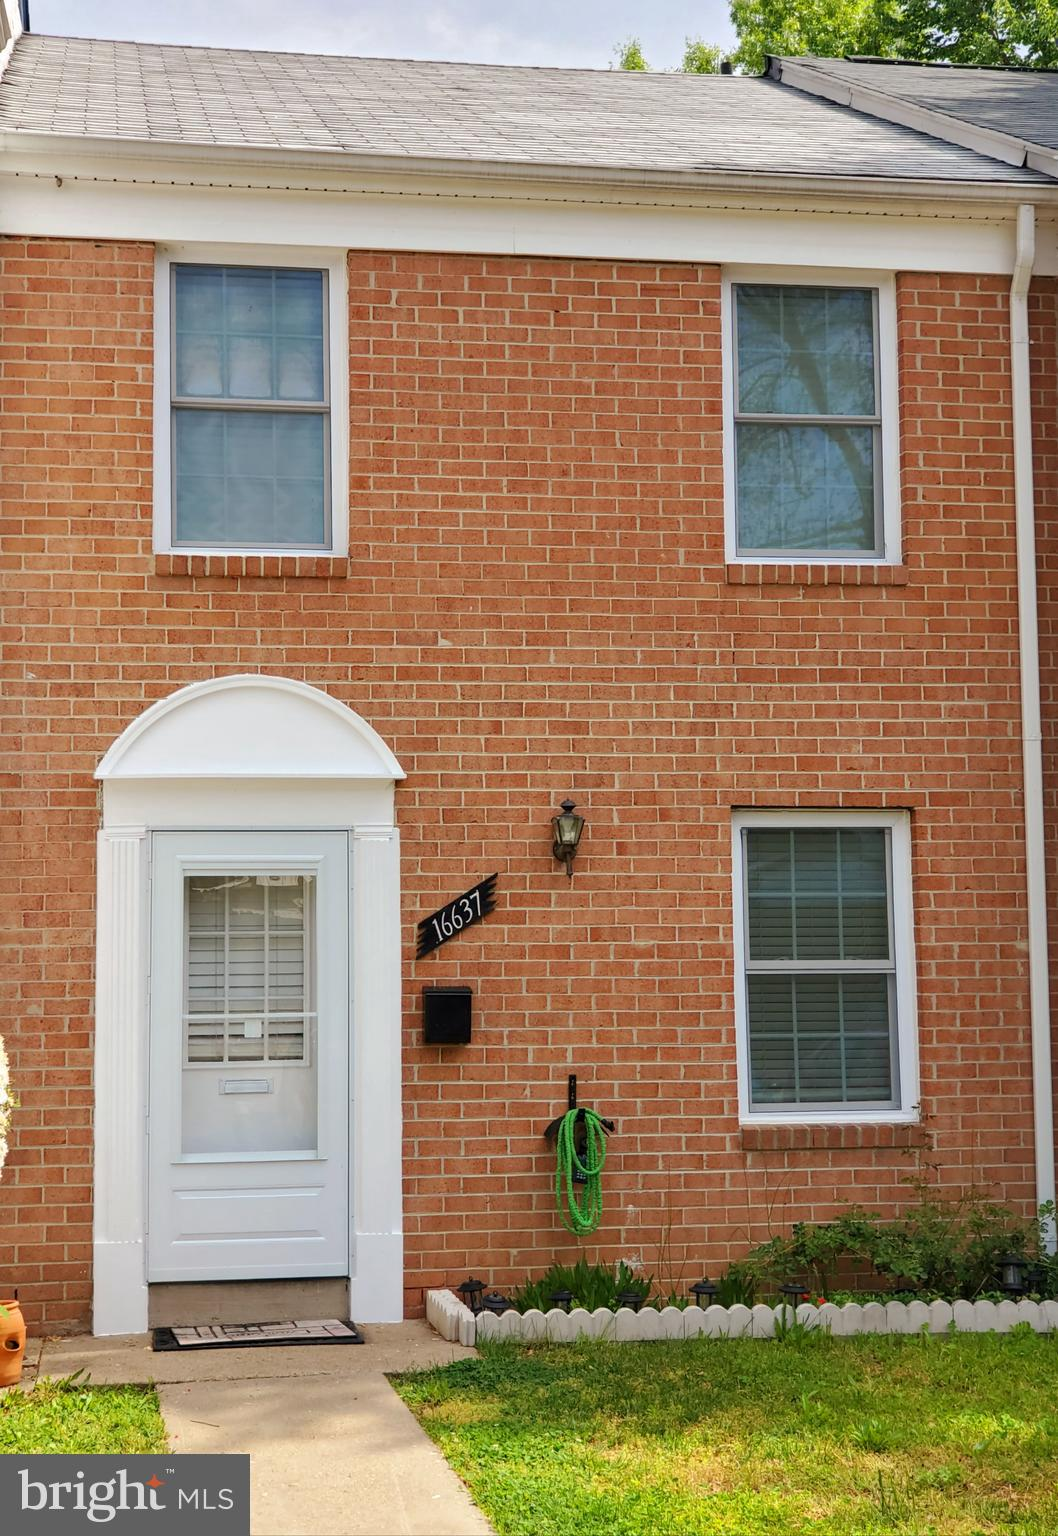 Beautiful 3 Bedroom brick front townhome in the Georgetown Village Community.  Extremely well maintained with an enclosed backyard. GREAT LOCATION:  Close to restaurants, Potomac Mills and Stone Ridge shopping centers, Quantico, VRE, Route 1 and I-95.